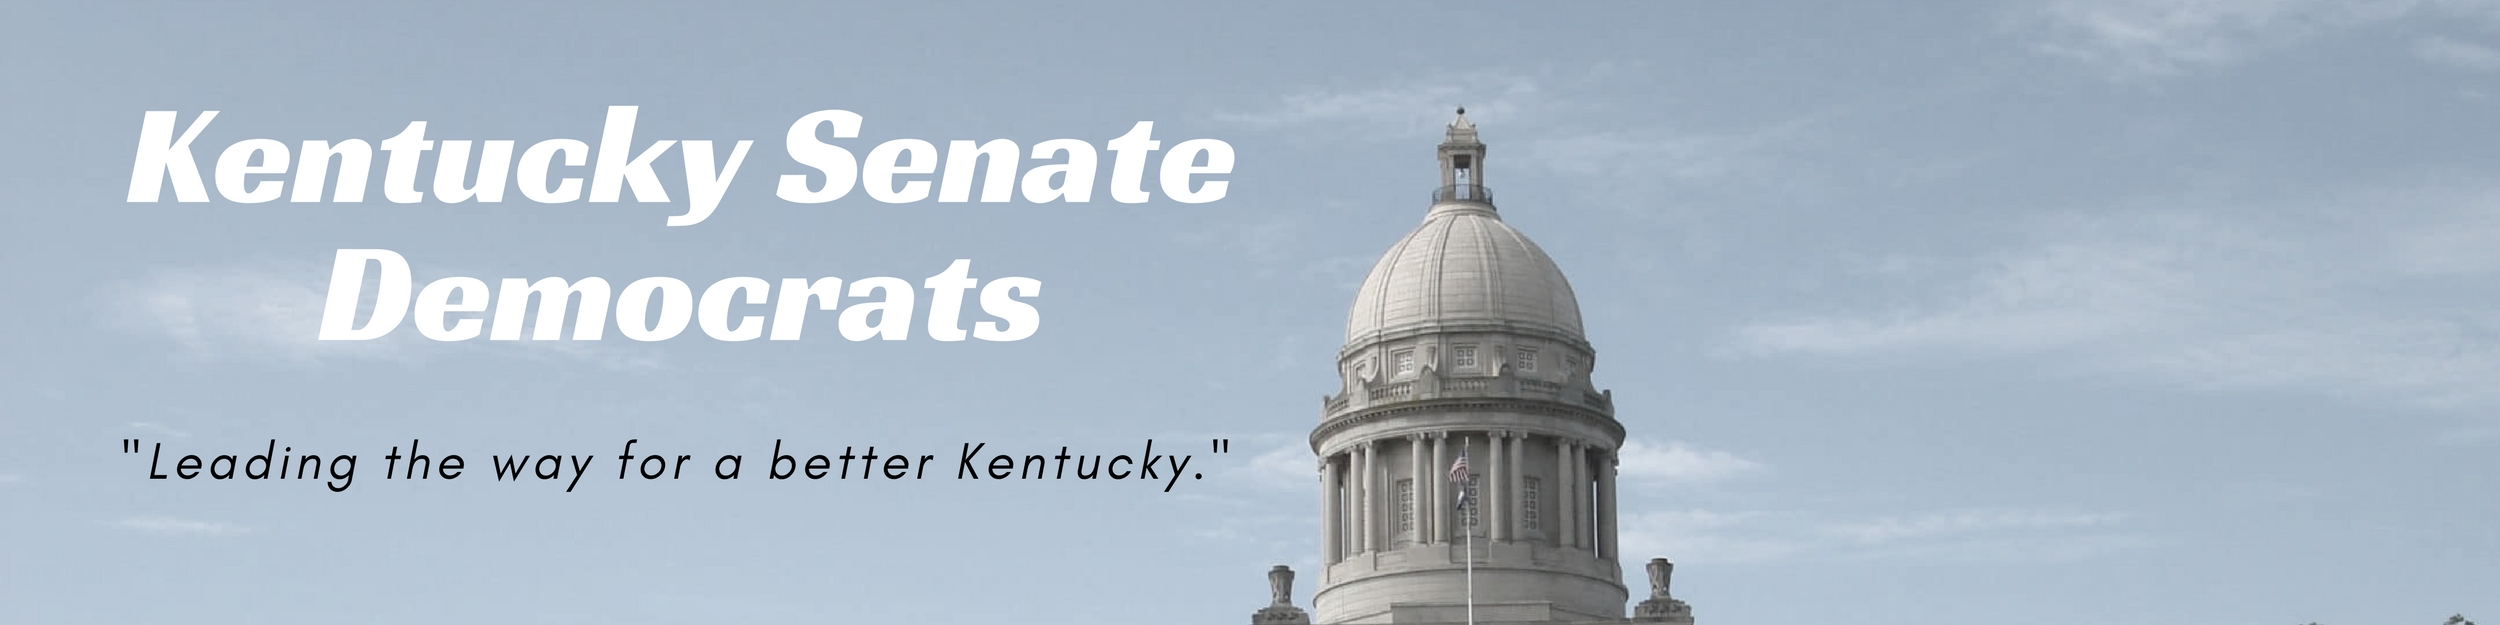 Kentucky Senate Democrats